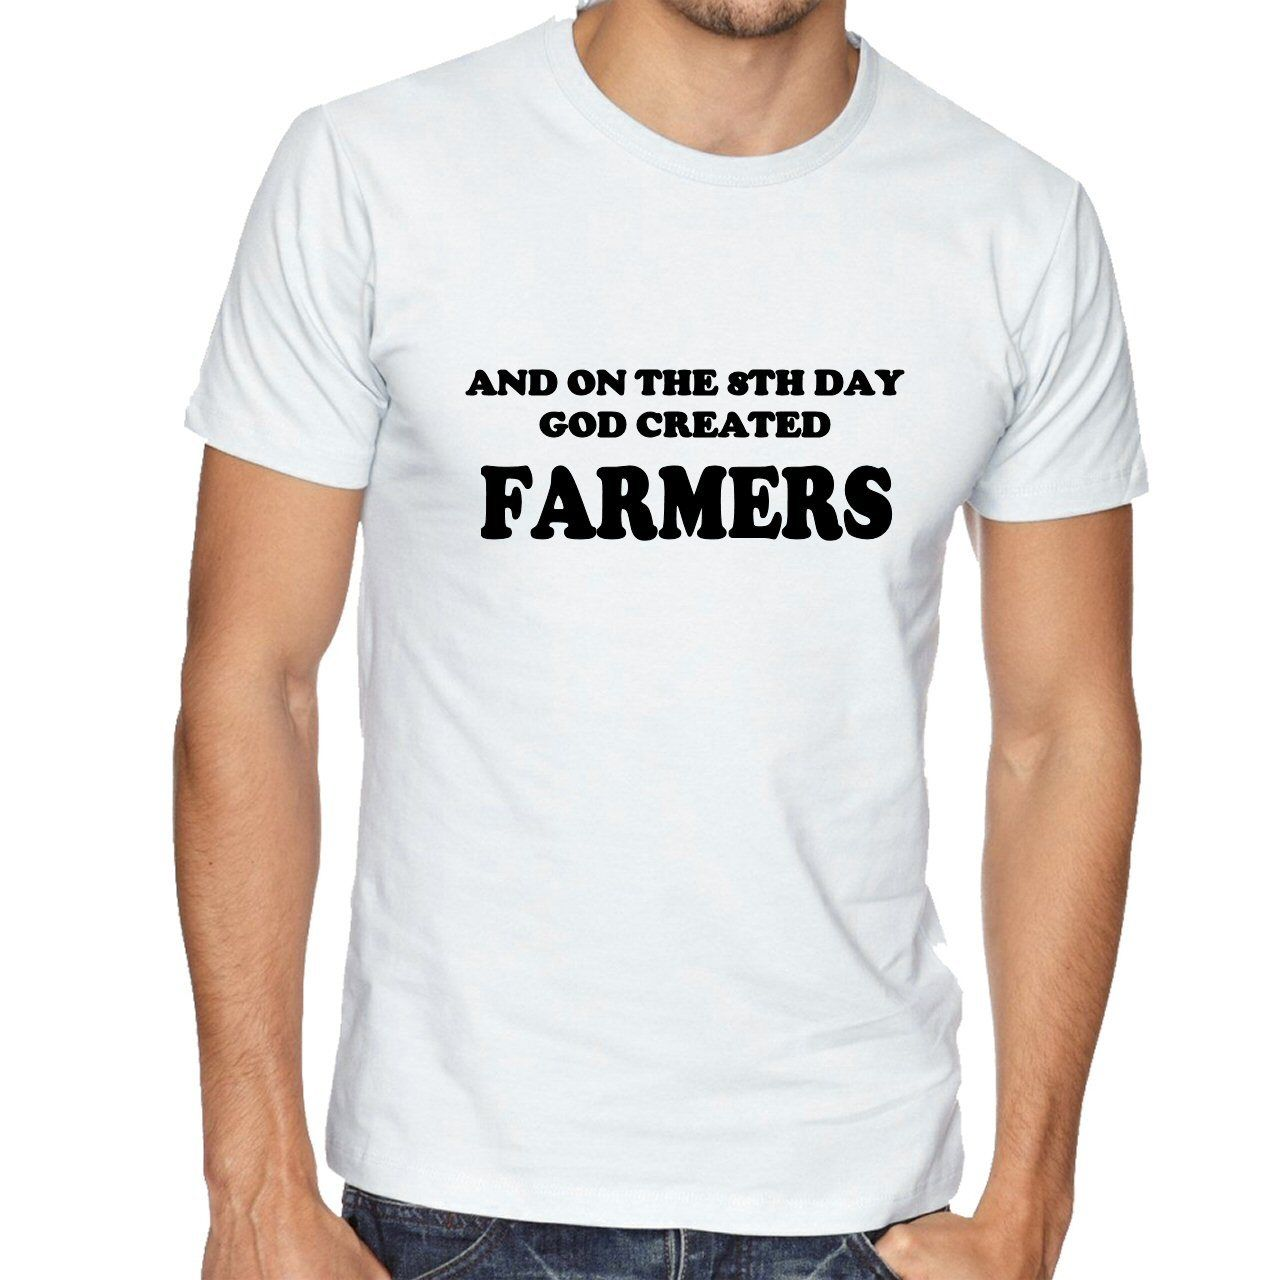 NEW ON THE 8TH DAY GOD CREATED FARMERS FUNNY NOVELTY TSHIRT AGE MenS T-Shirts Summer Style Fashion Swag Men T Shirts